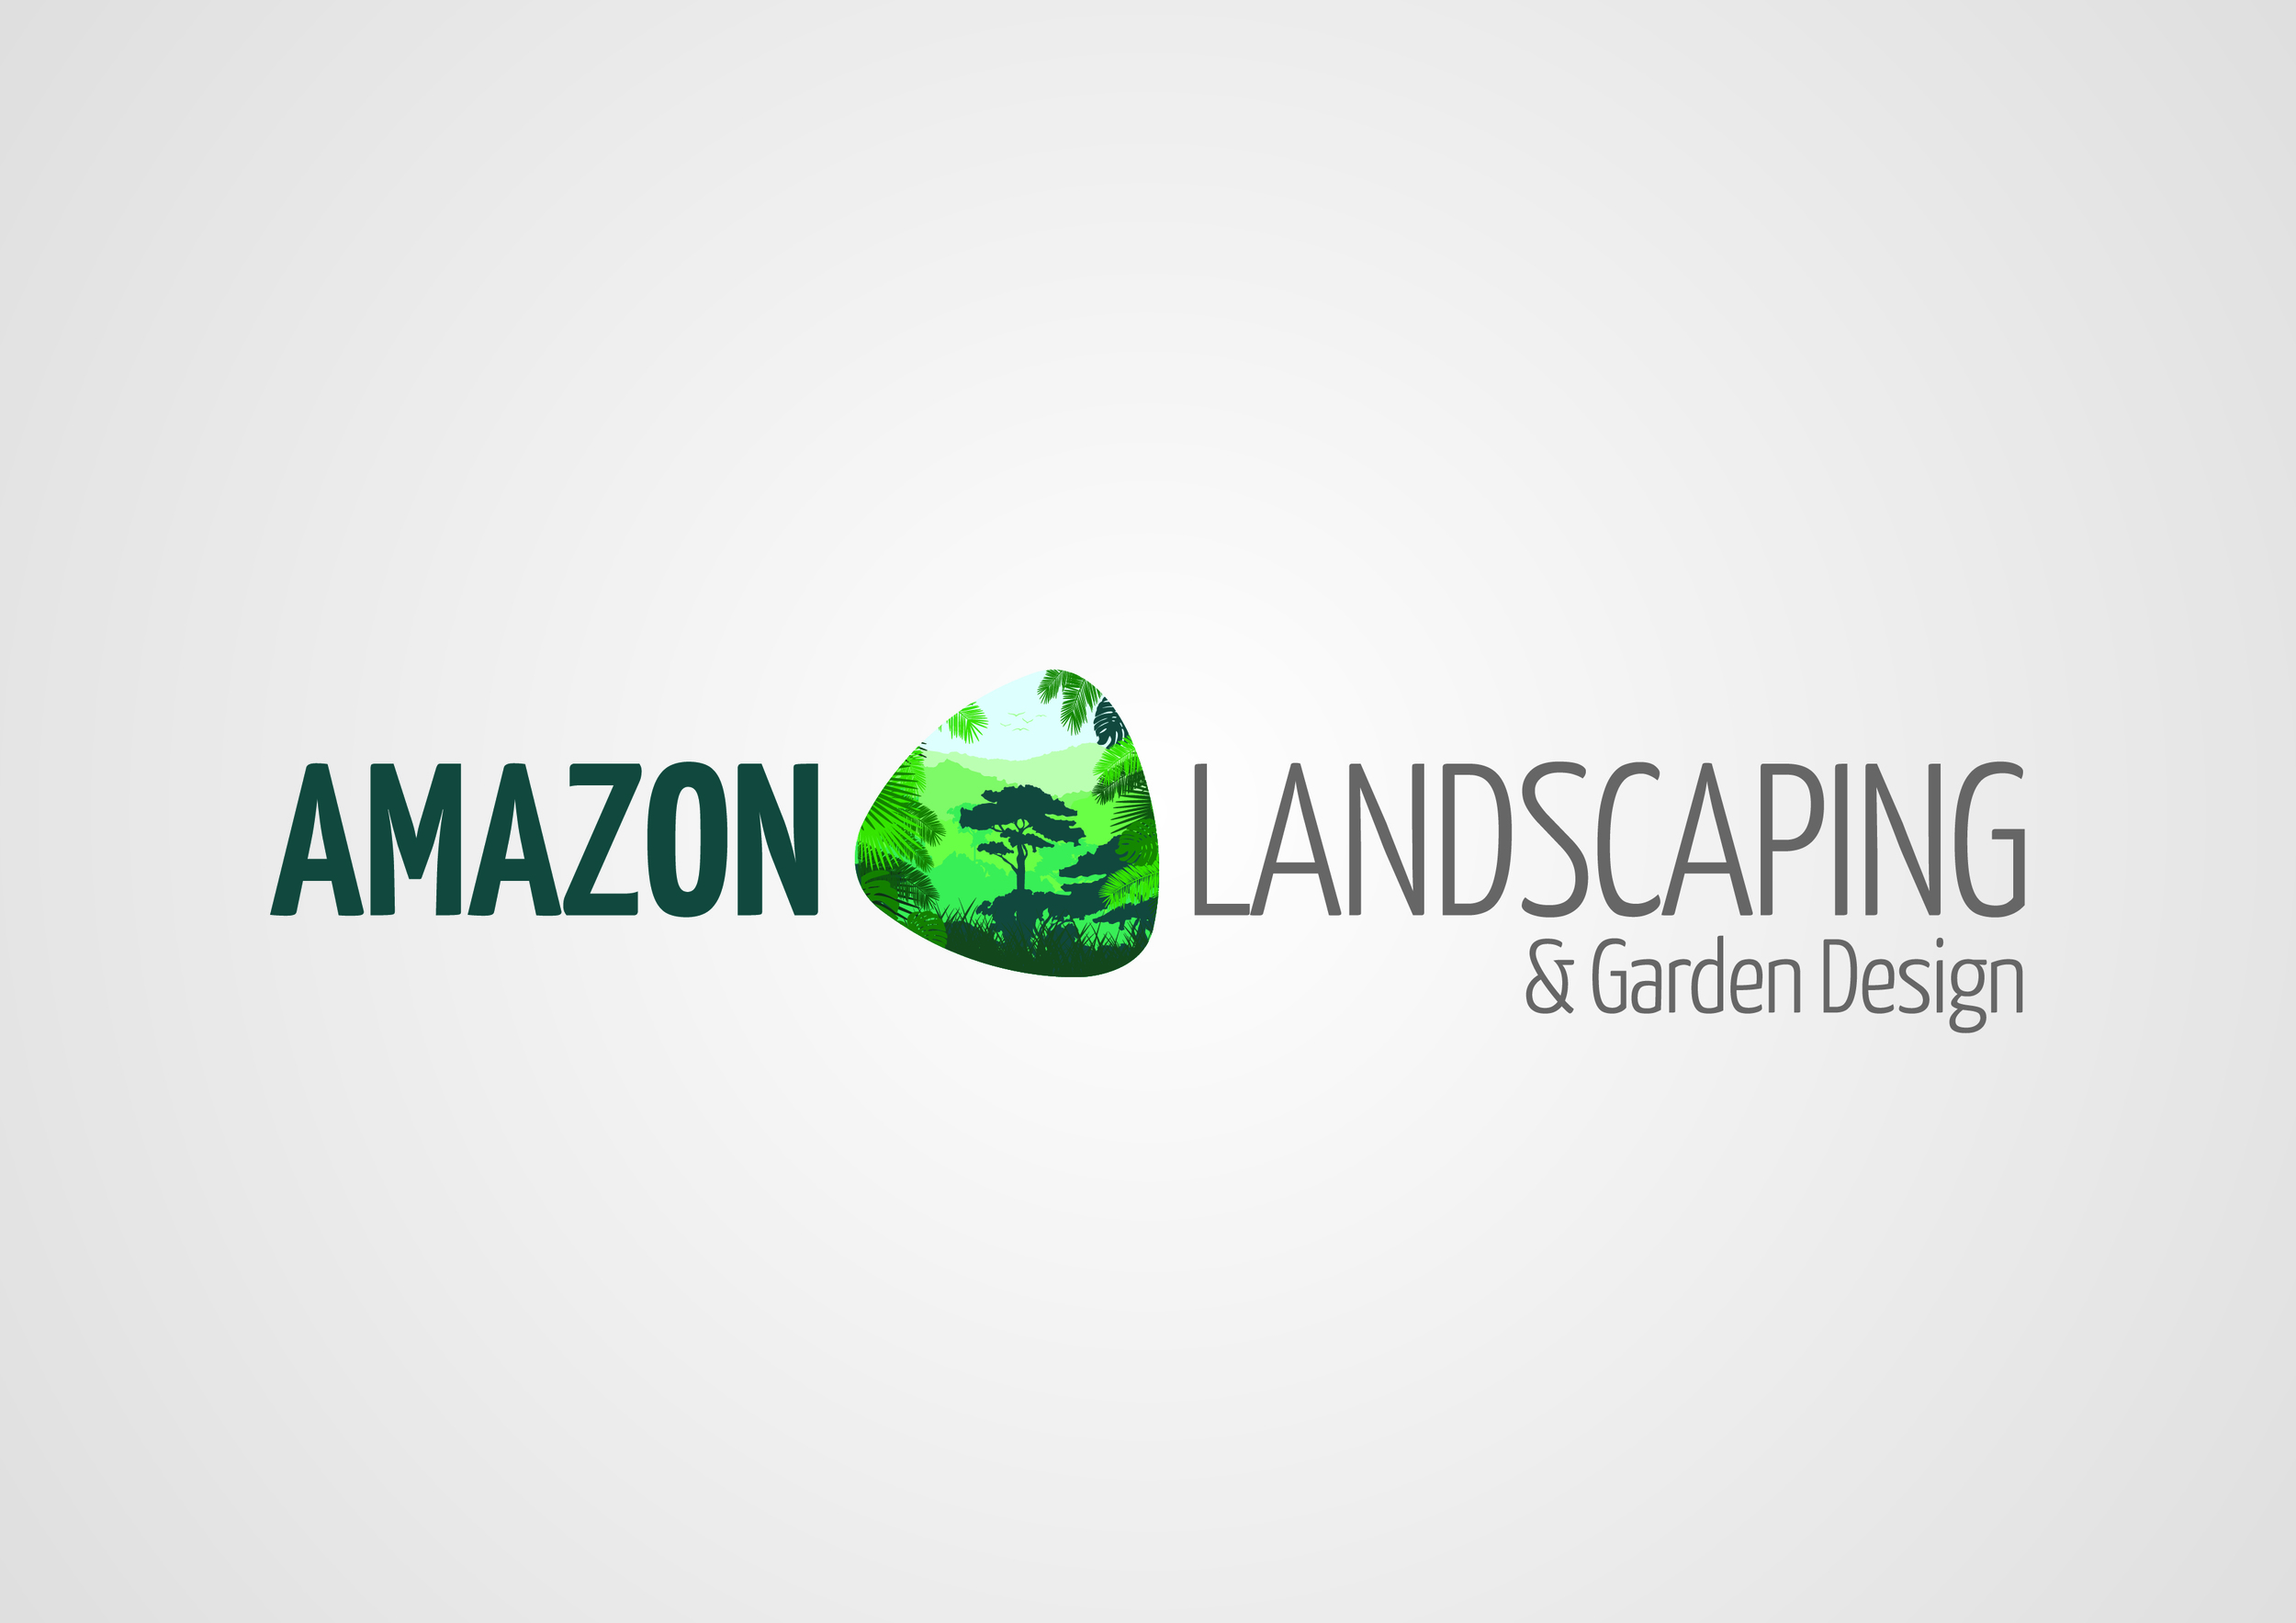 Amazon Landscaping and Garden Design